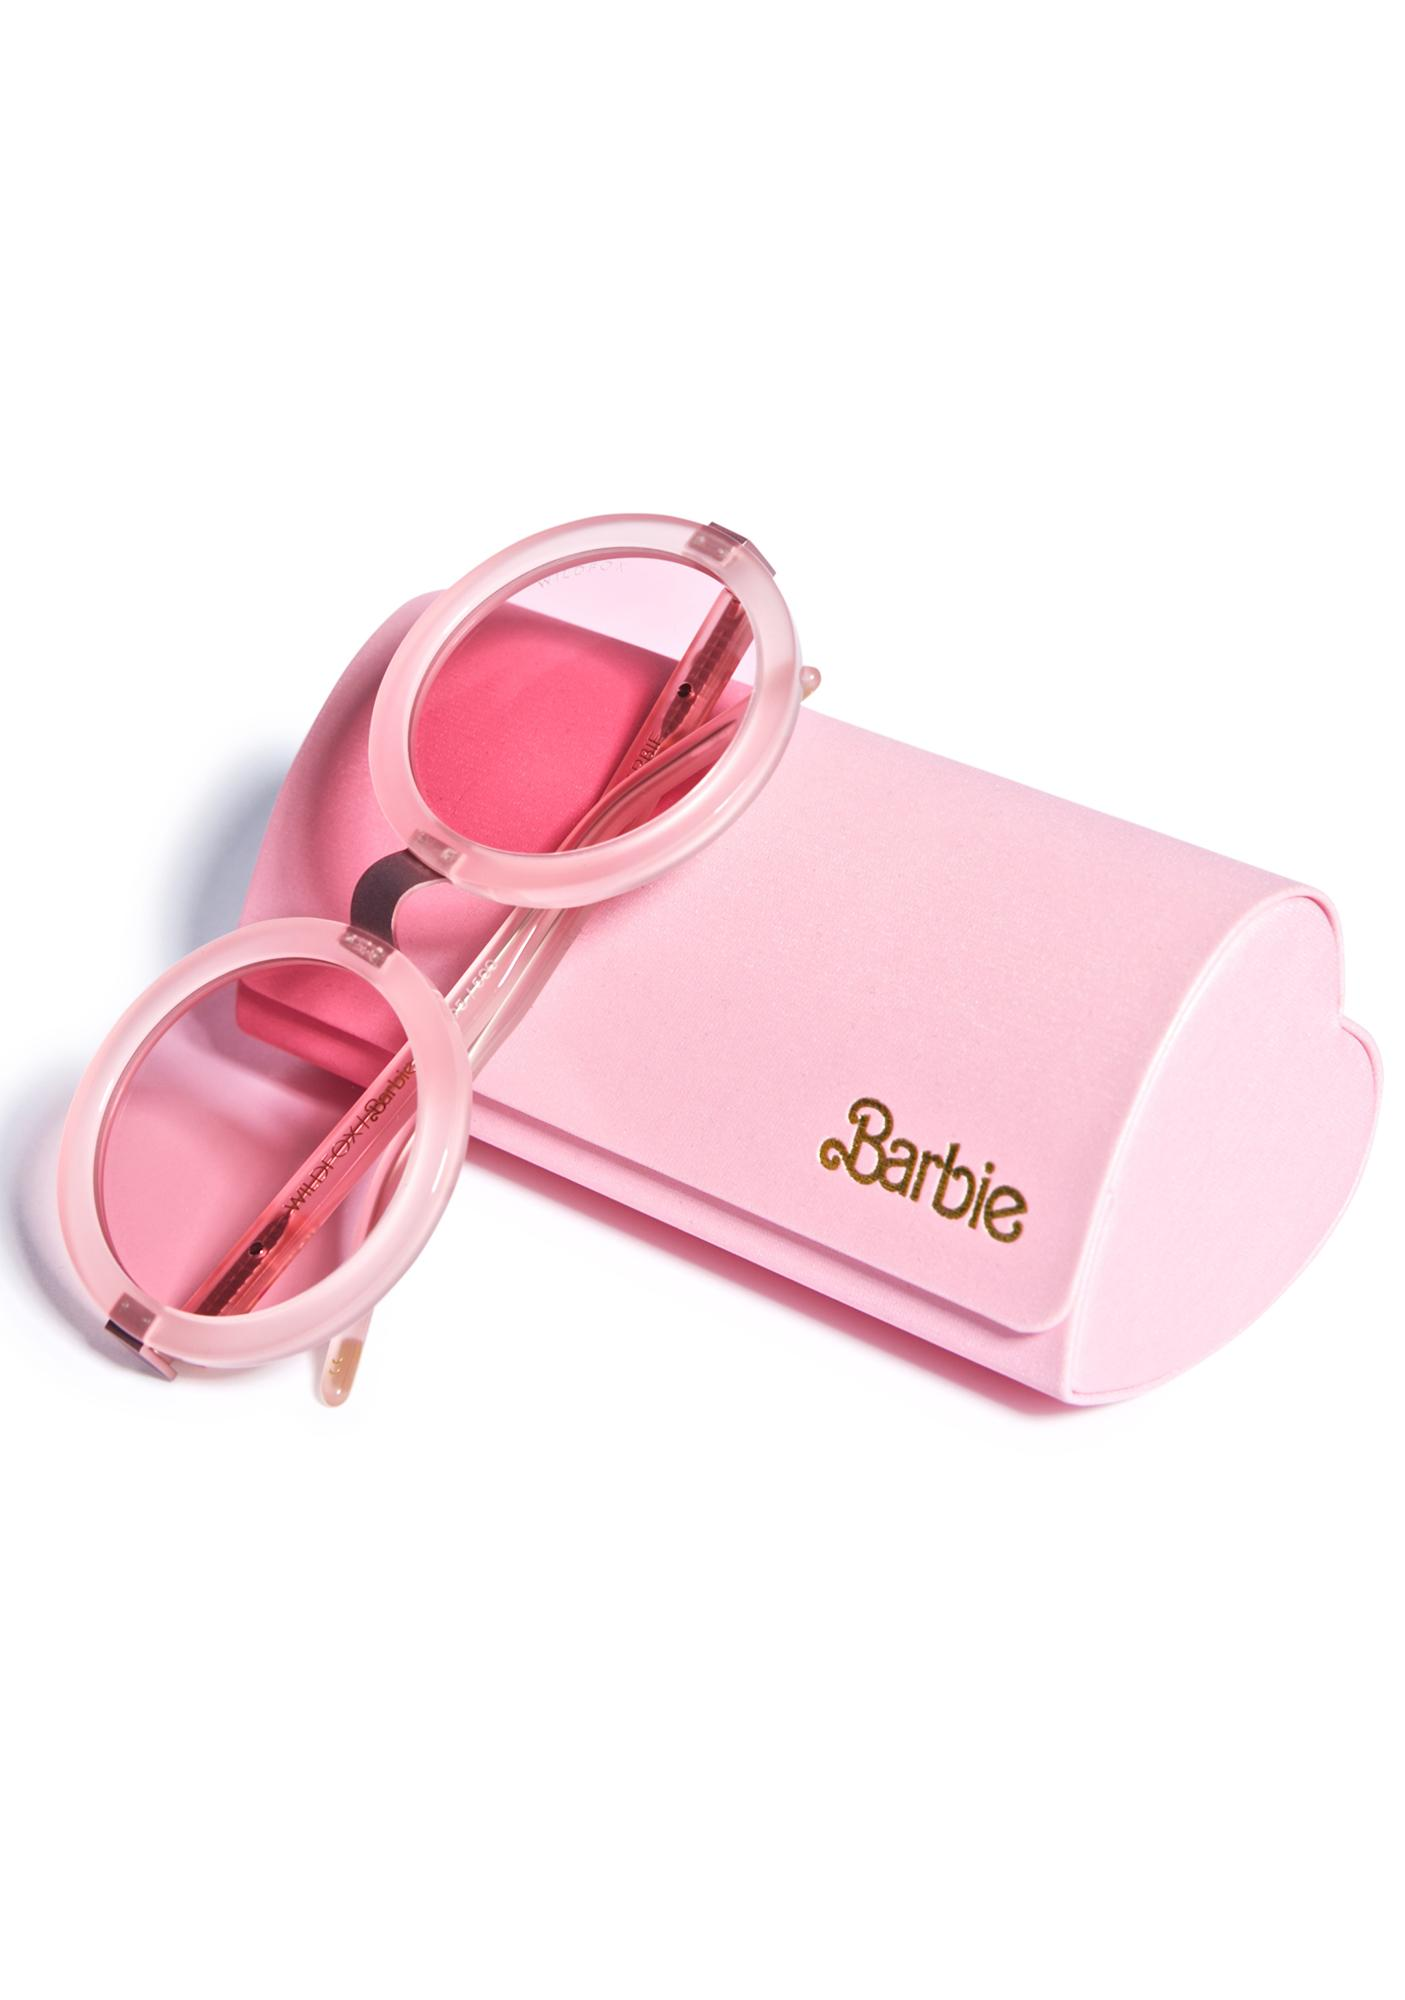 Wildfox Couture Malibu Barbie Sunglasses